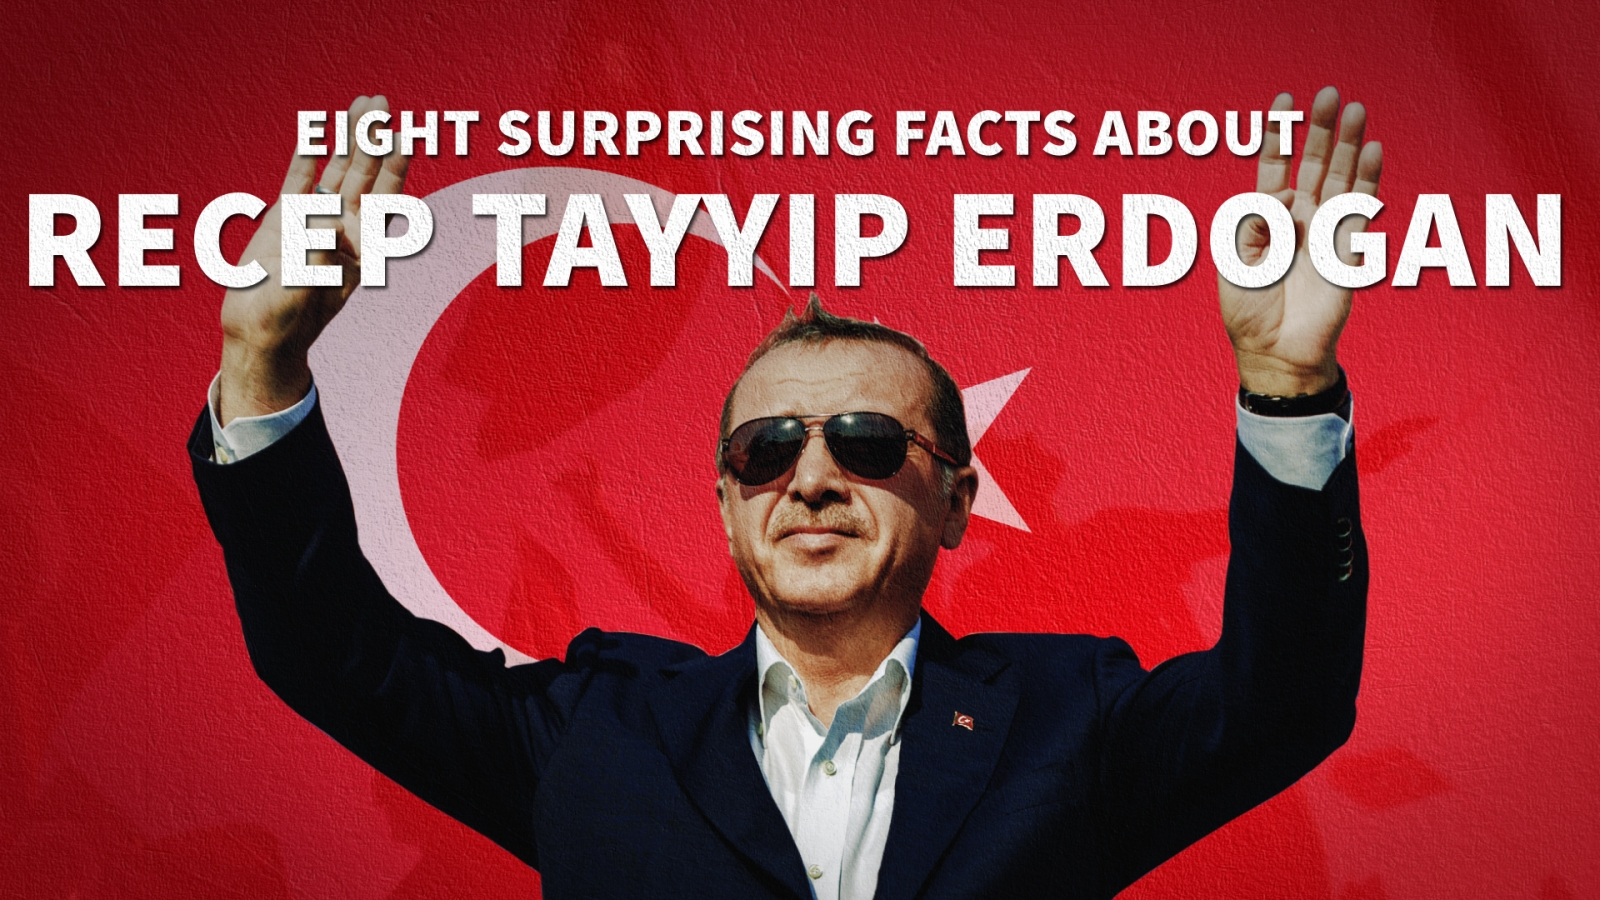 Eight Surprising Facts About Recep Tayyip Erdogan